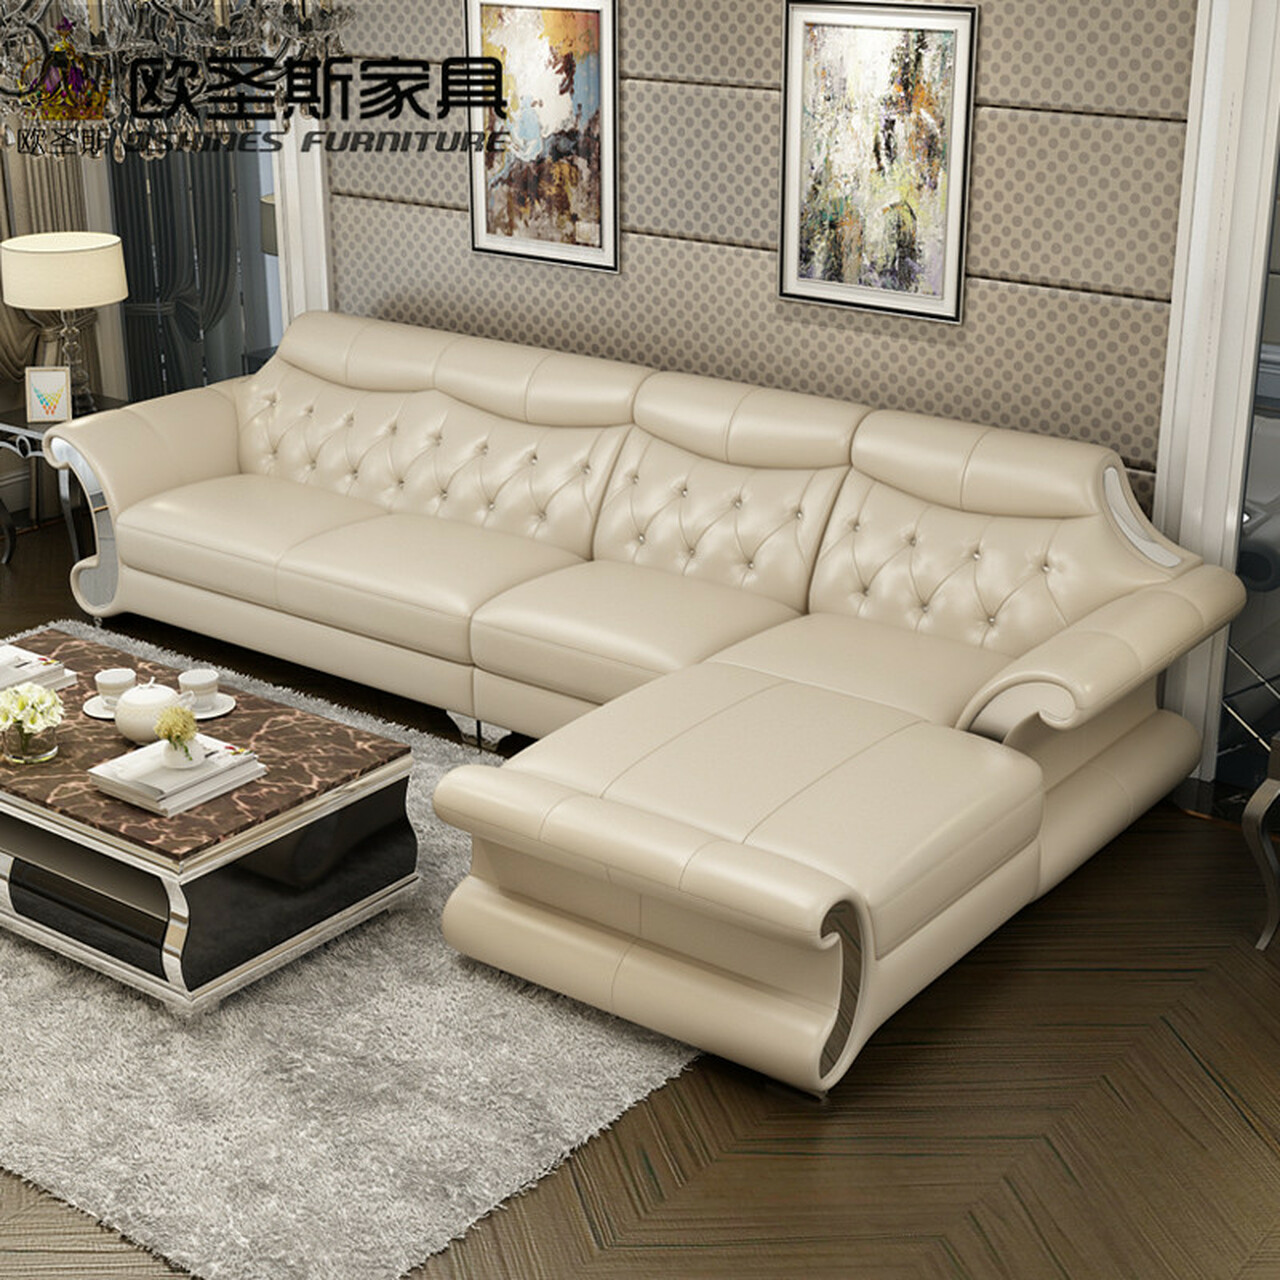 Sofà divano letto clic clac 2 posti in similpelle reclinabile design moderno elly. Beautiful Post Modern Bright Colored Sleeper Couch Living Room Stailess Steel Frame Buffalo Leather Sofa Set Designs And Prices Onshopdeals Com